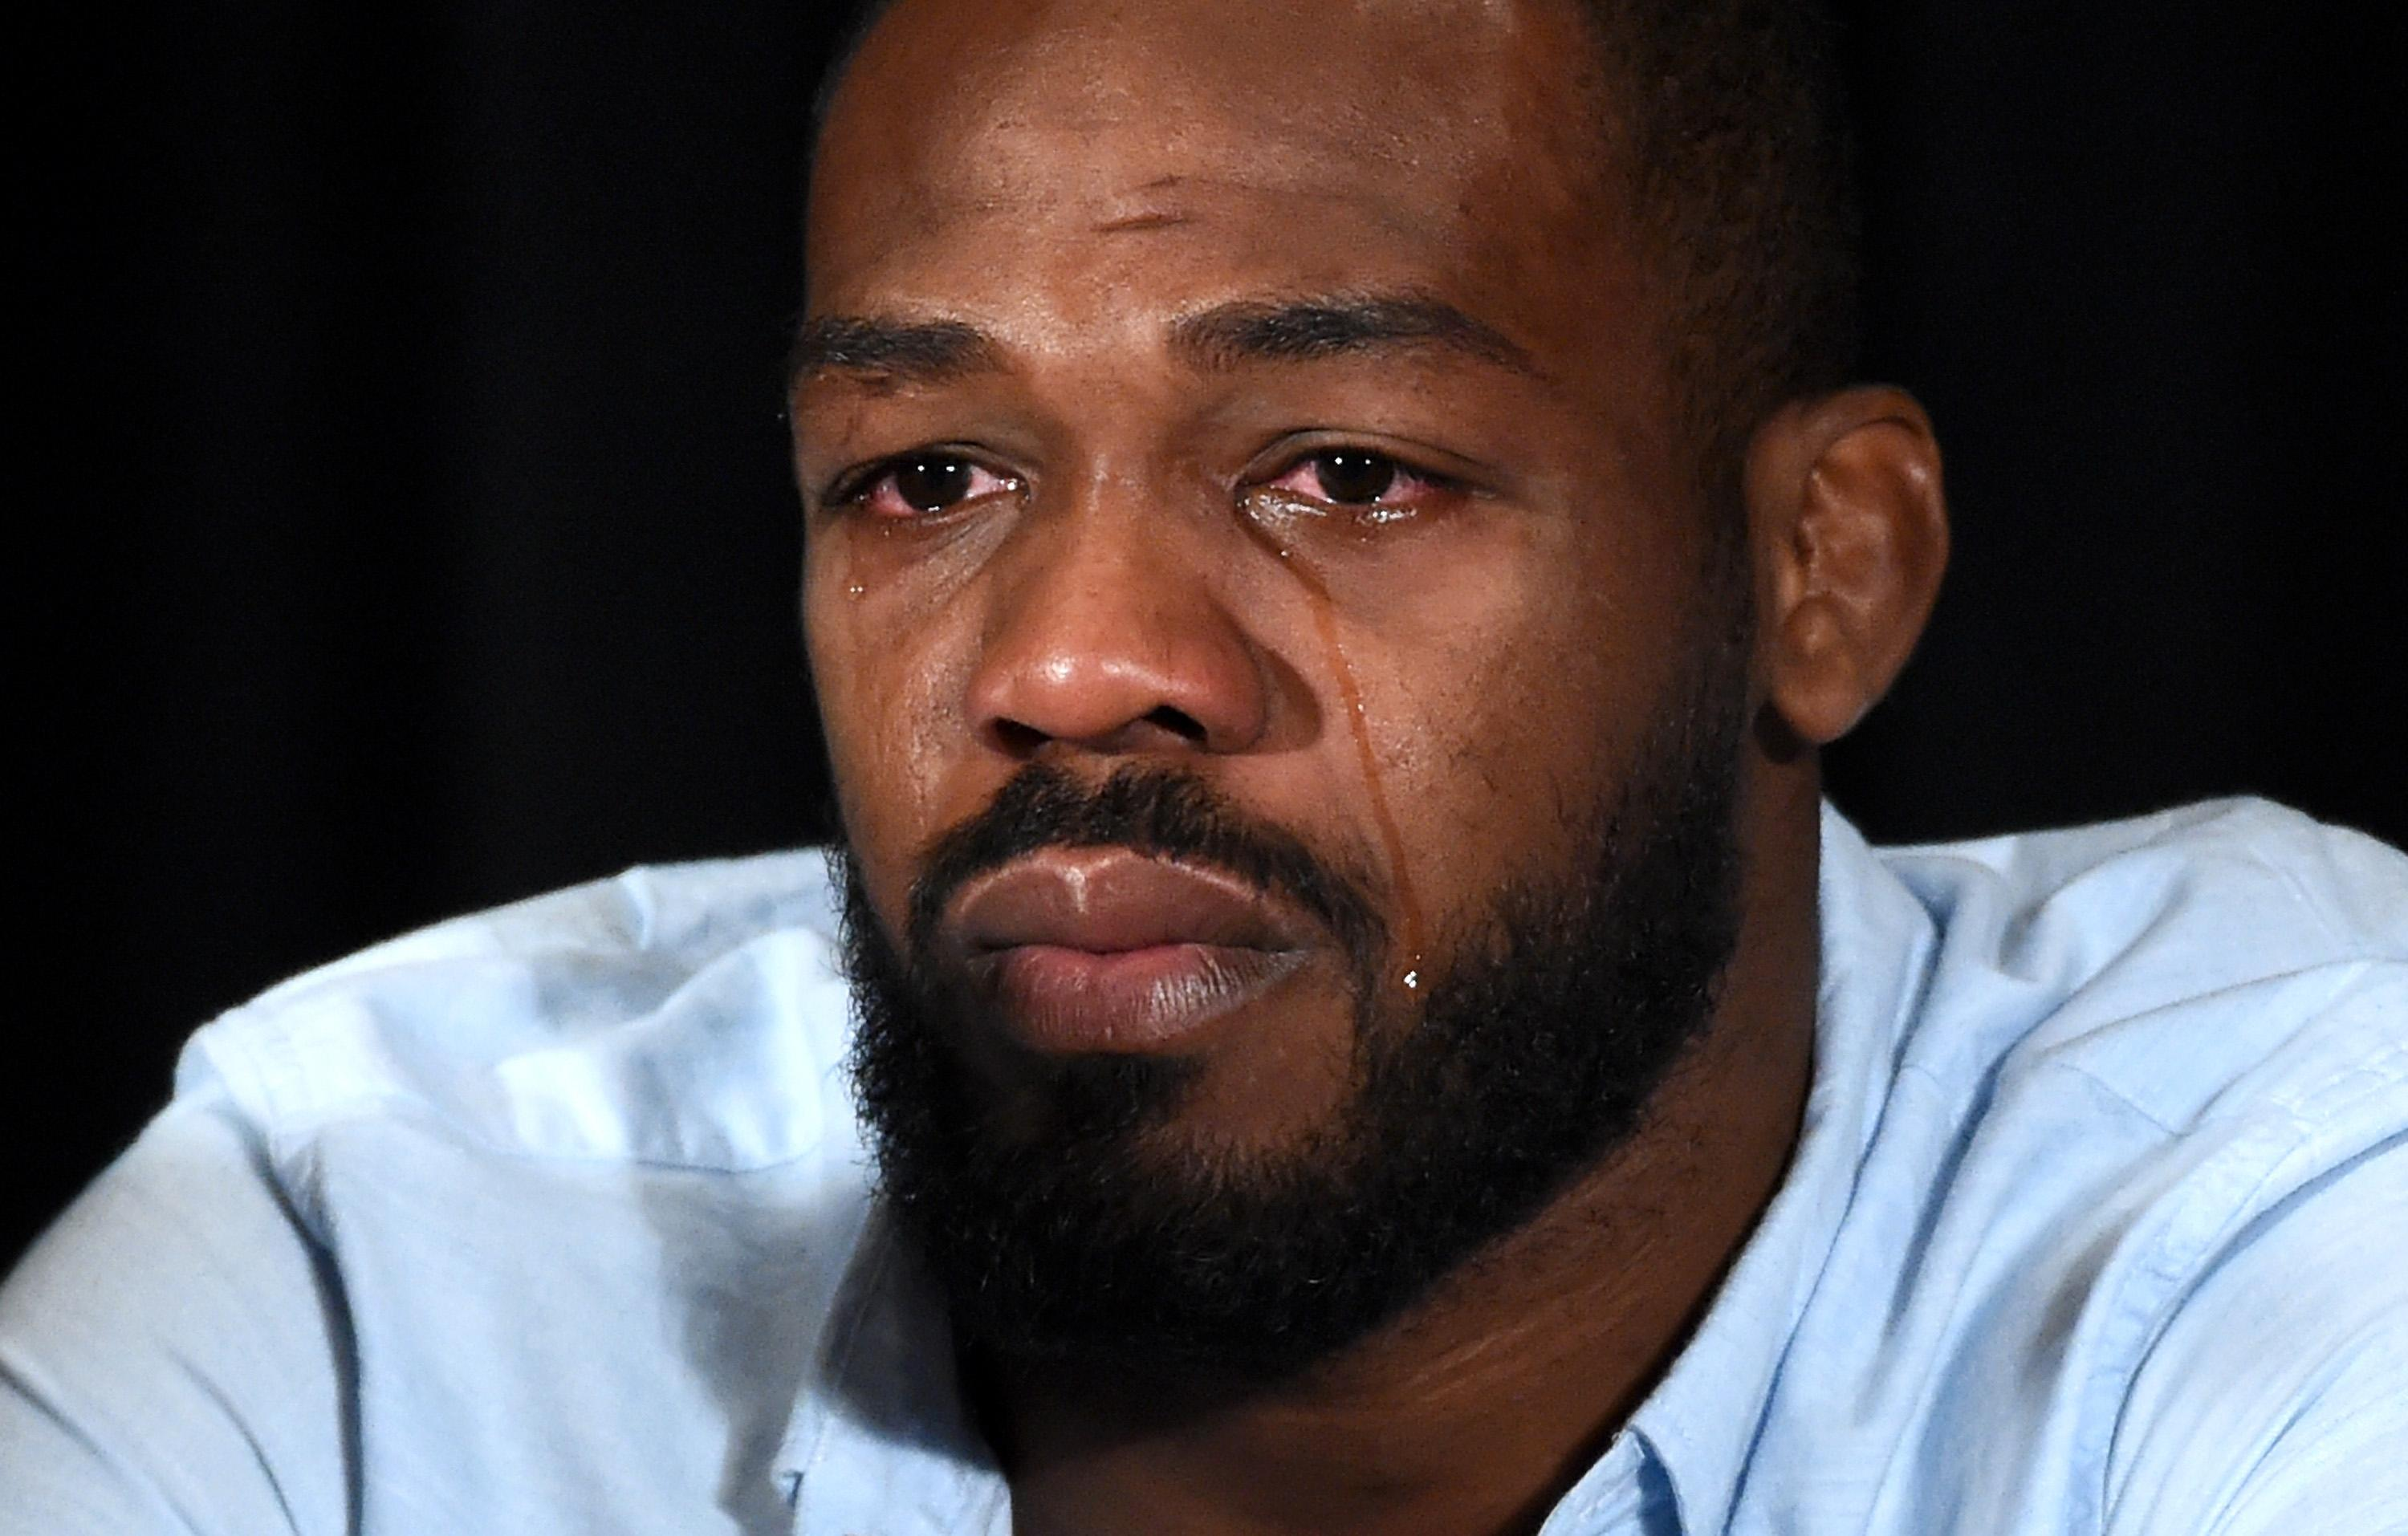 UFC Rumors: Jon Jones Blasts Dana White For False Claims, Seeking Release